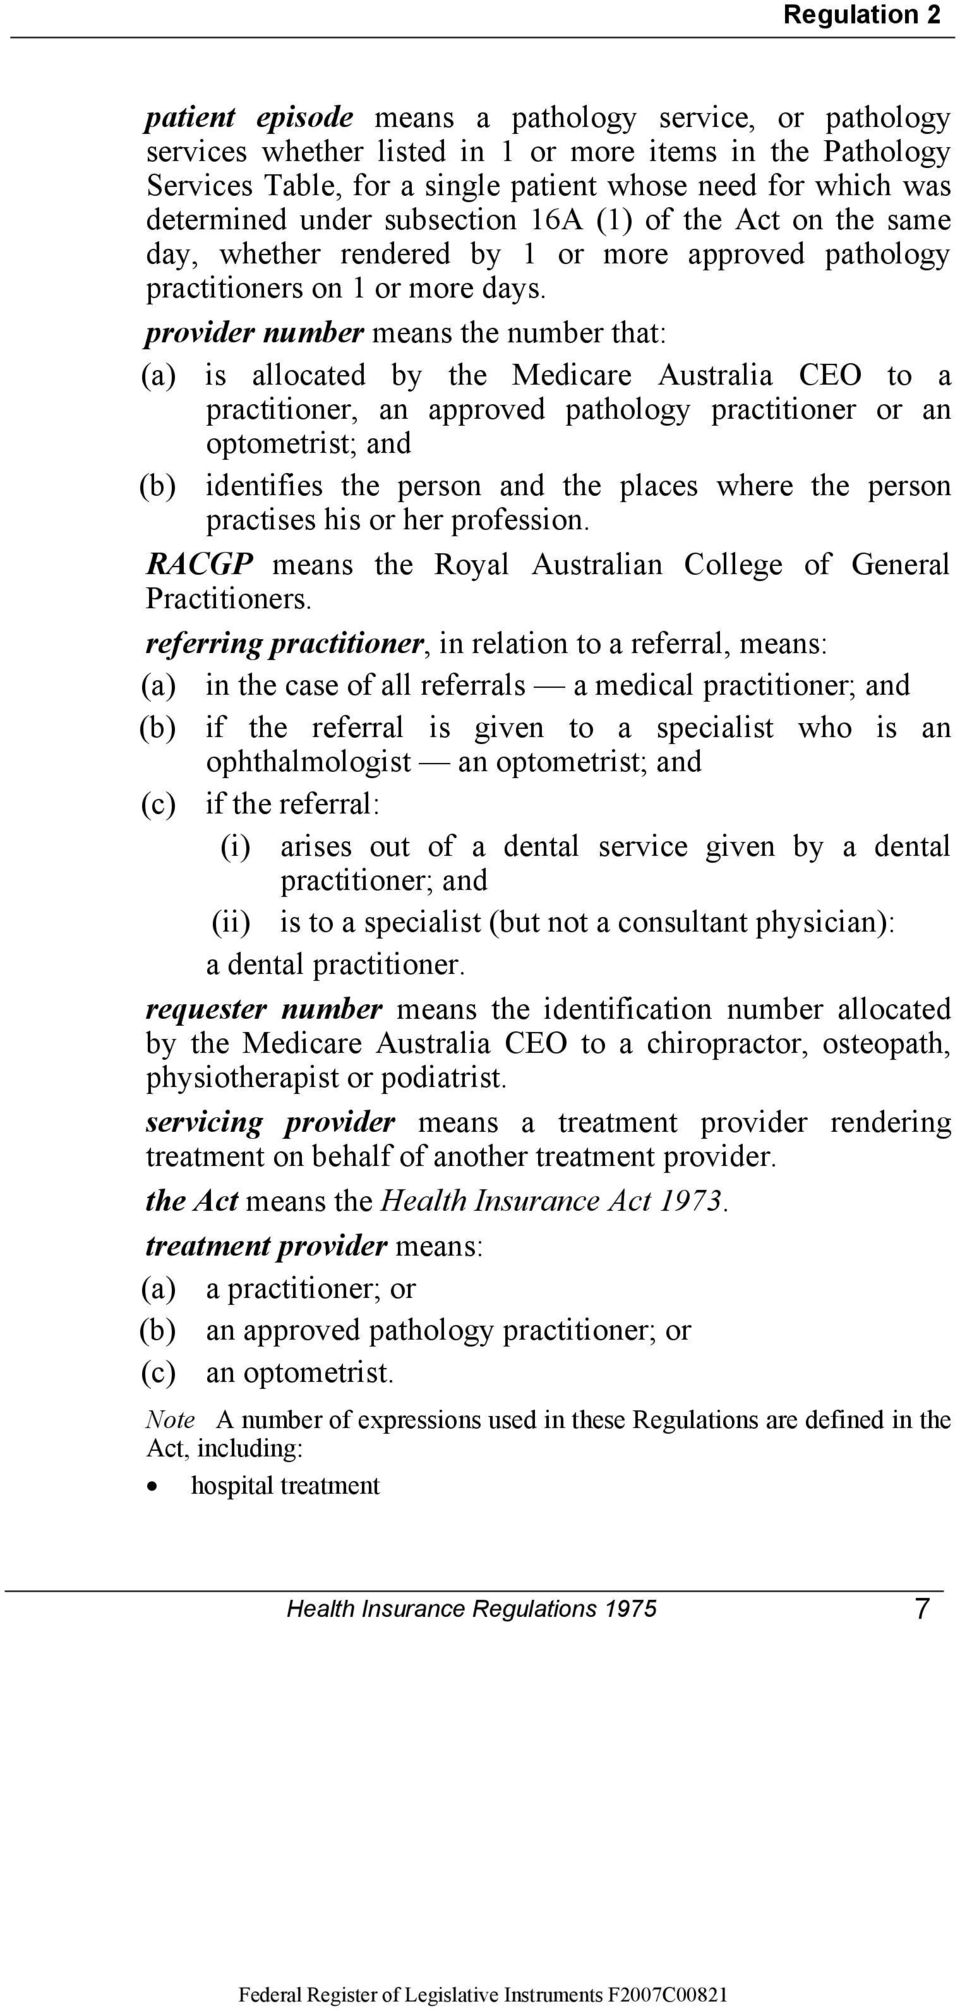 provider number means the number that: (a) is allocated by the Medicare Australia CEO to a practitioner, an approved pathology practitioner or an optometrist; and (b) identifies the person and the